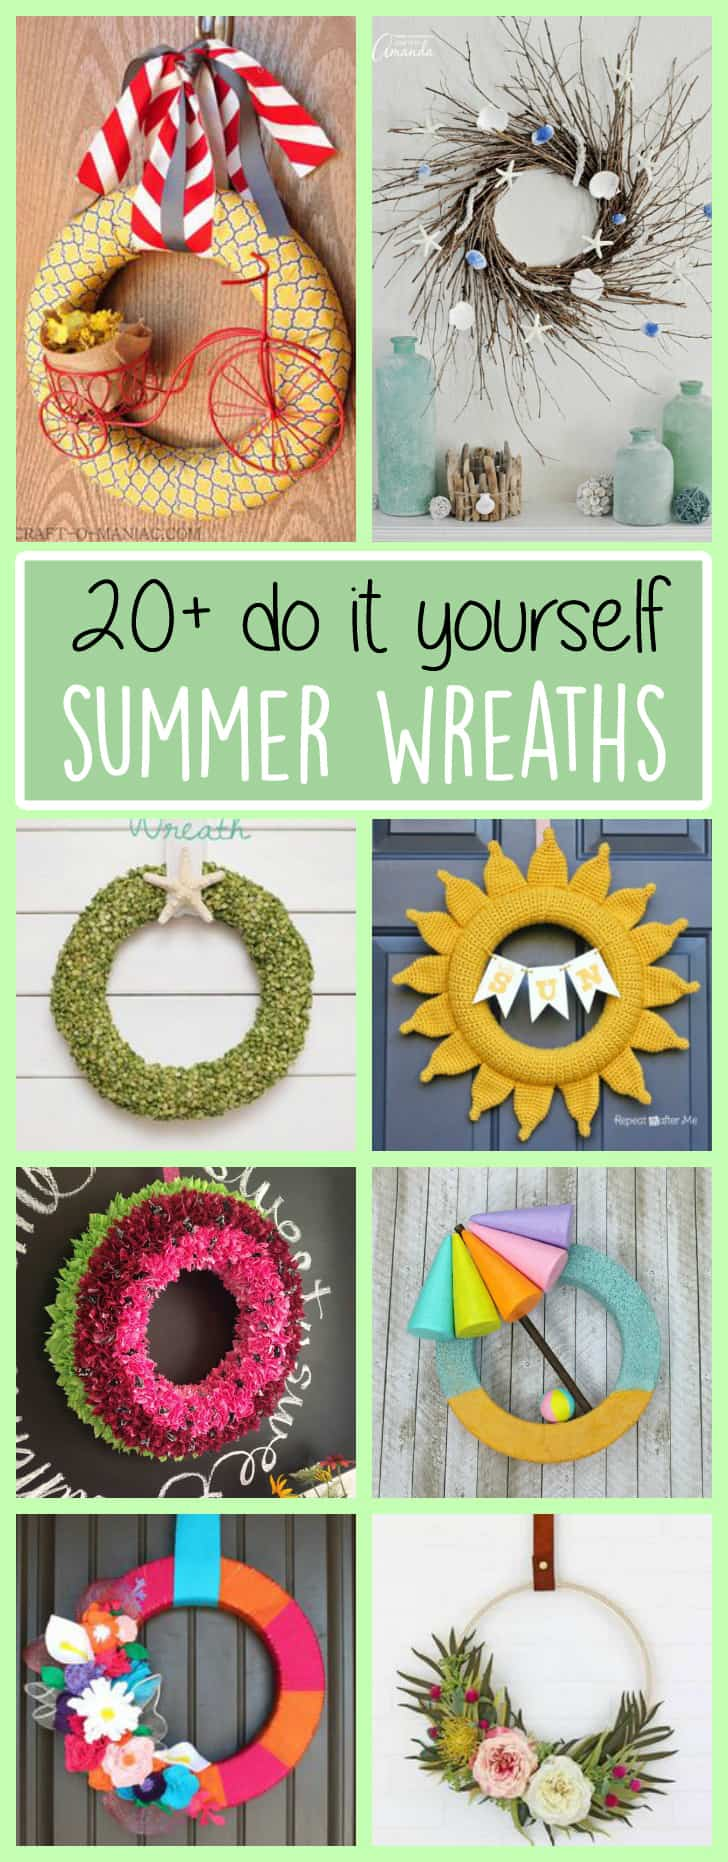 Diy summer wreaths 20 beautiful statement wreaths for for Summer craft ideas for adults